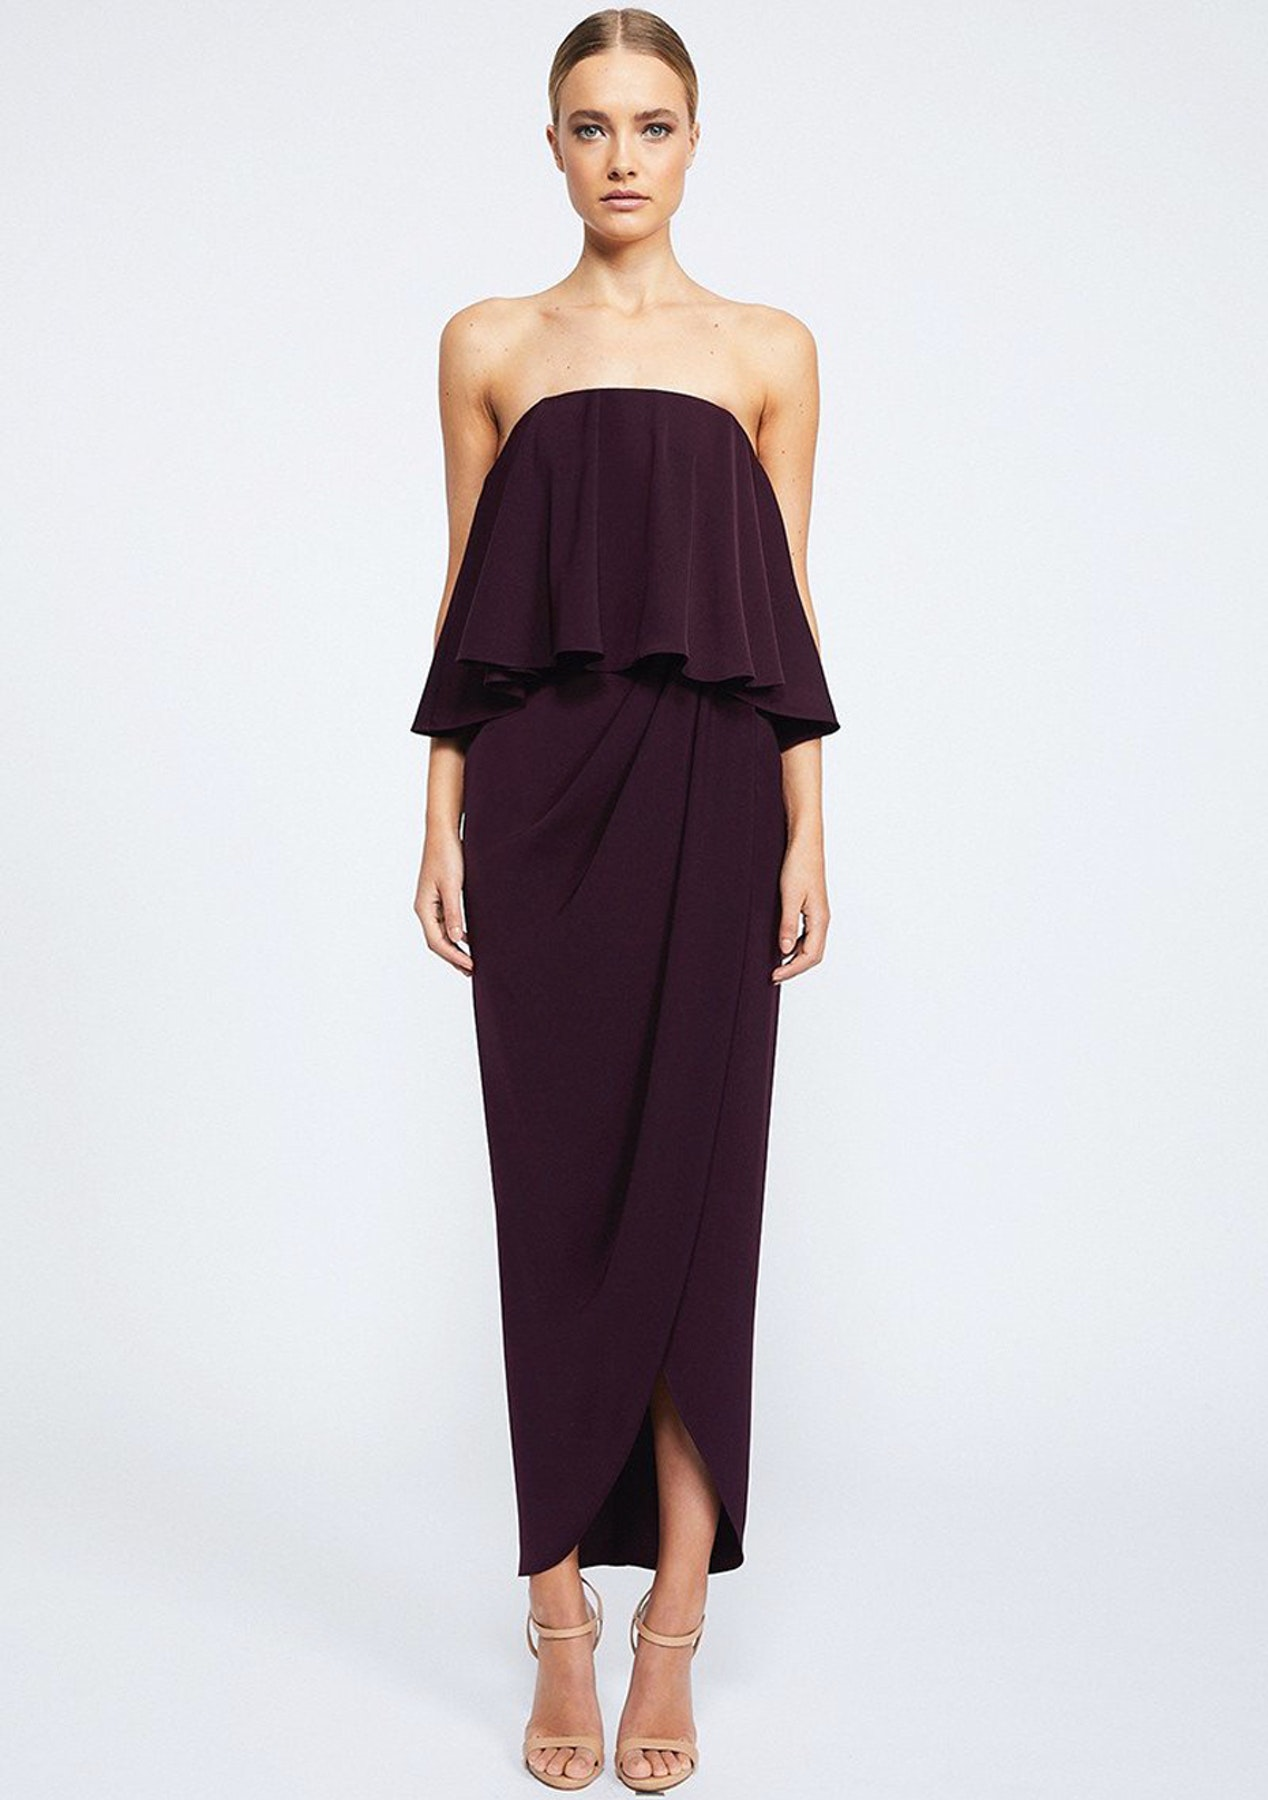 60415c5da98 Shona Joy - Core Strapless Frill Dress - Aubergine - Same Day Shipping Cocktail  Dresses   Shoes - Onceit